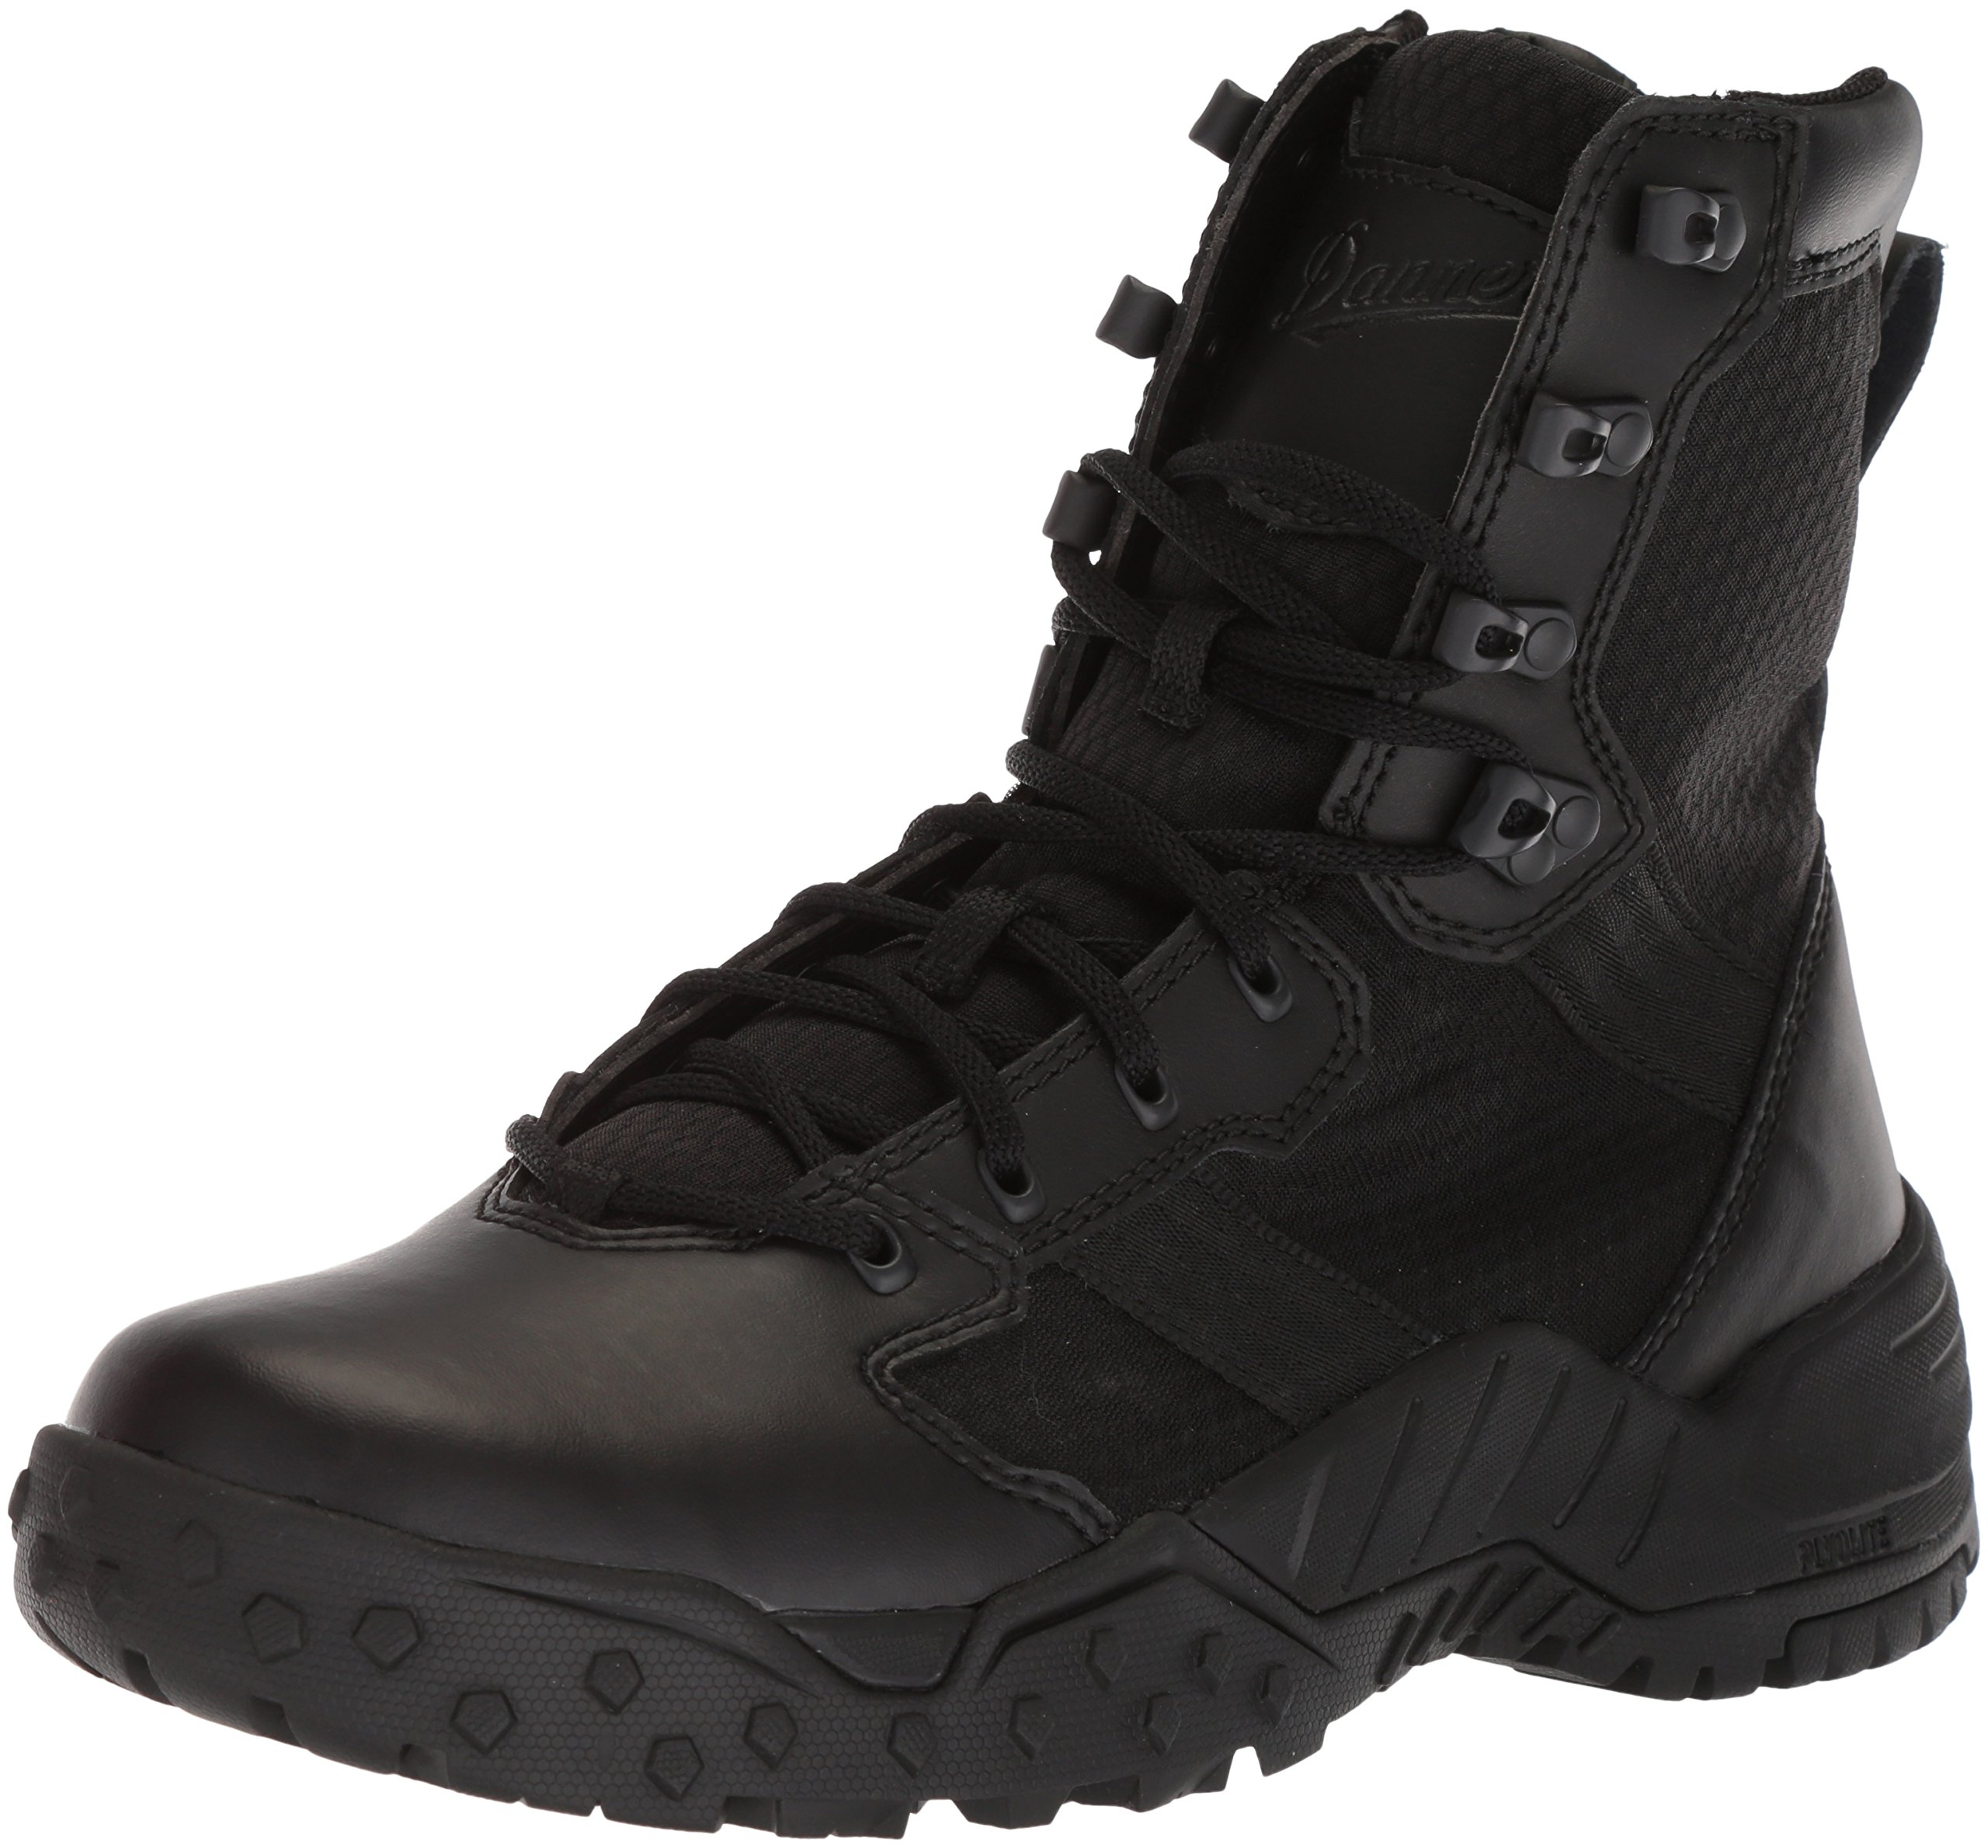 Danner Men's Scorch Side-Zip 8'' Military and Tactical Boot, Black Hot, 10.5 2E US by Danner